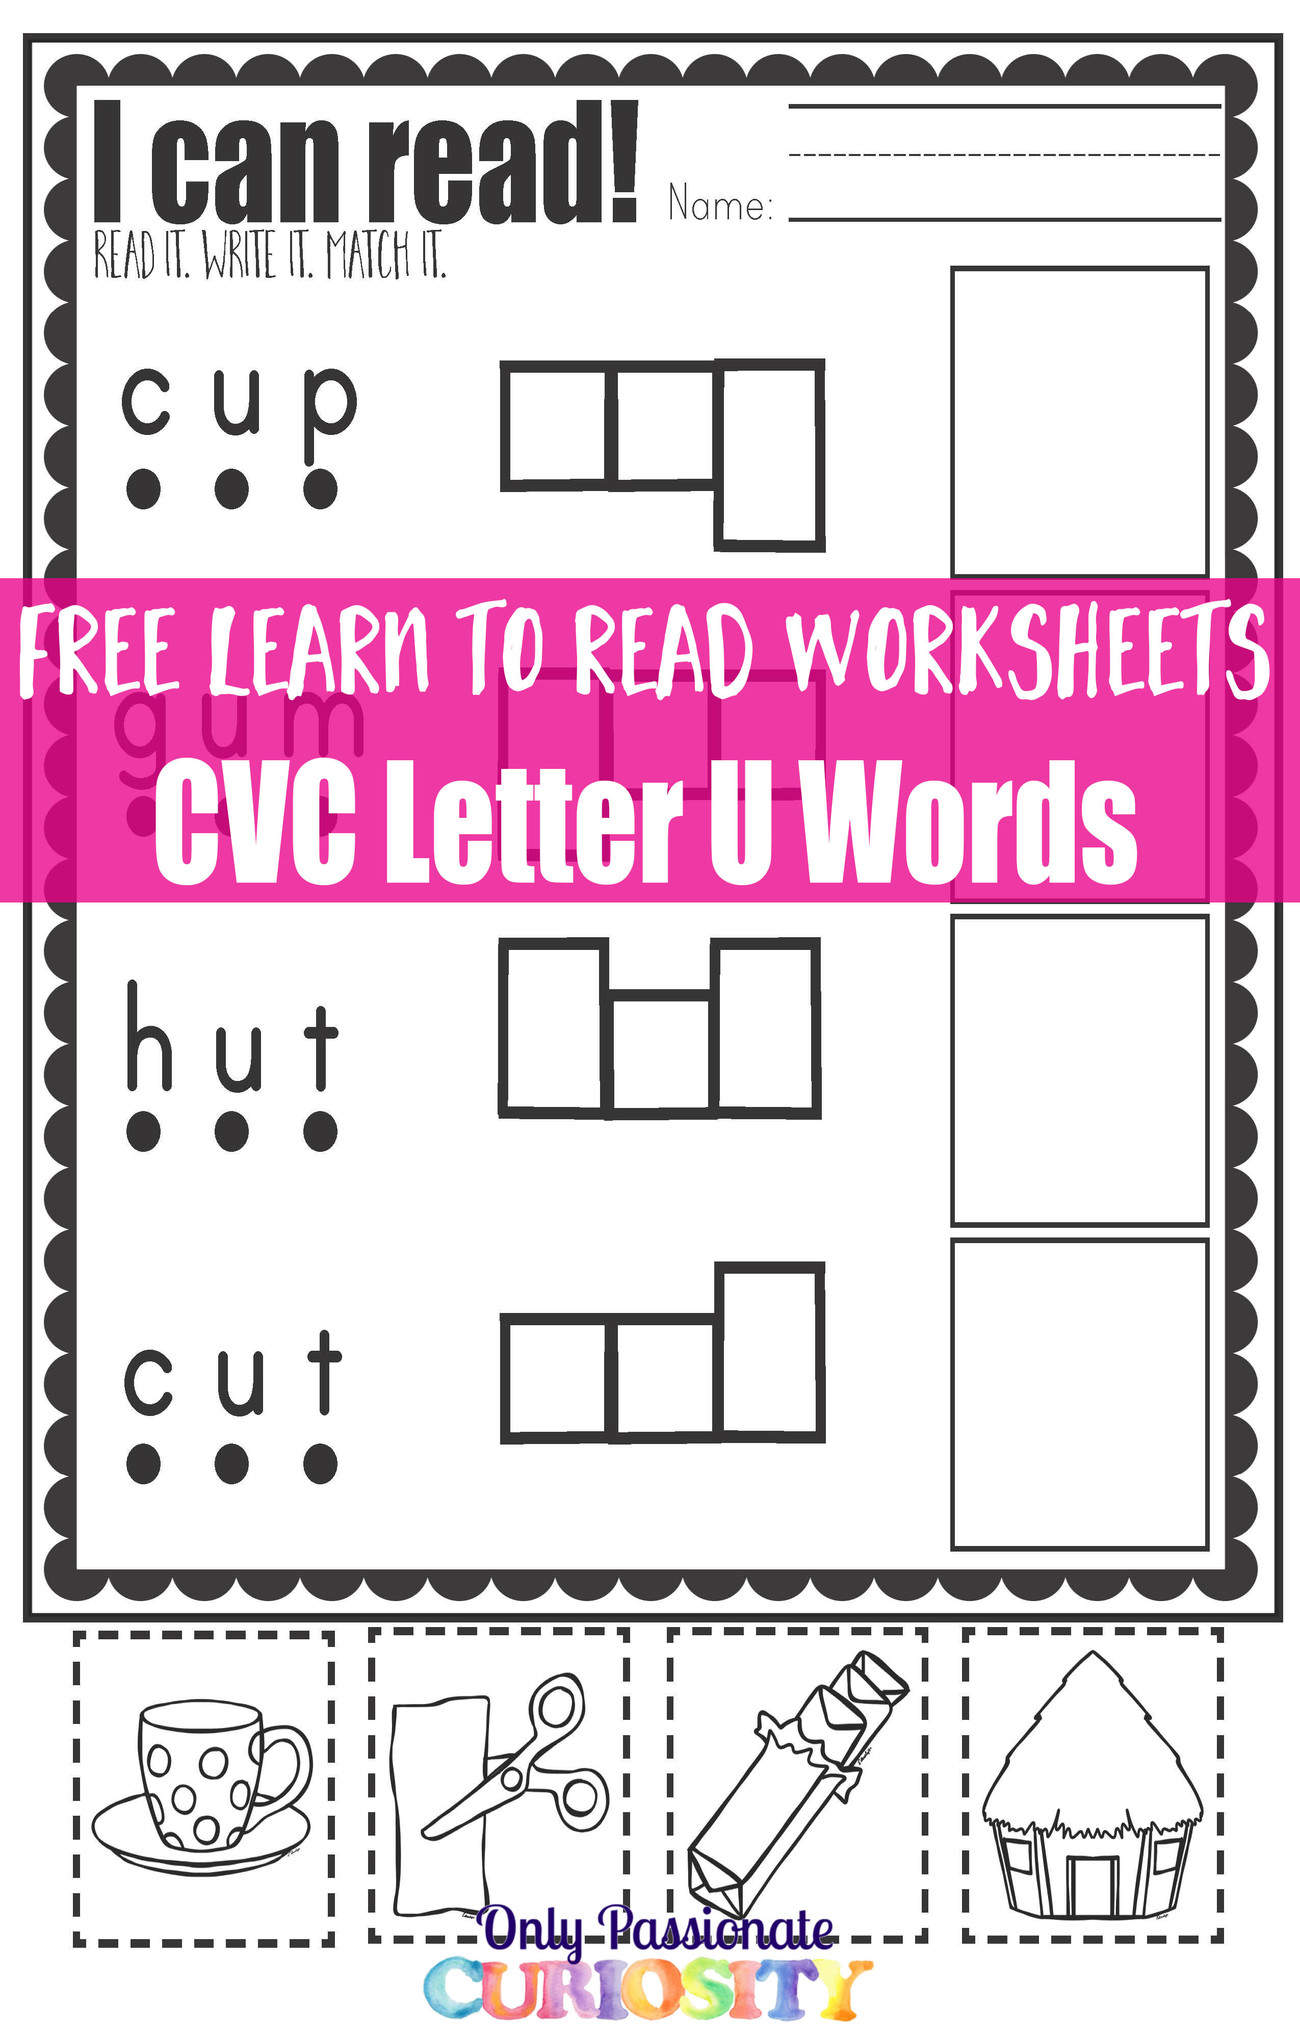 Learn To Read Worksheets Practice With Cvc U Words Only